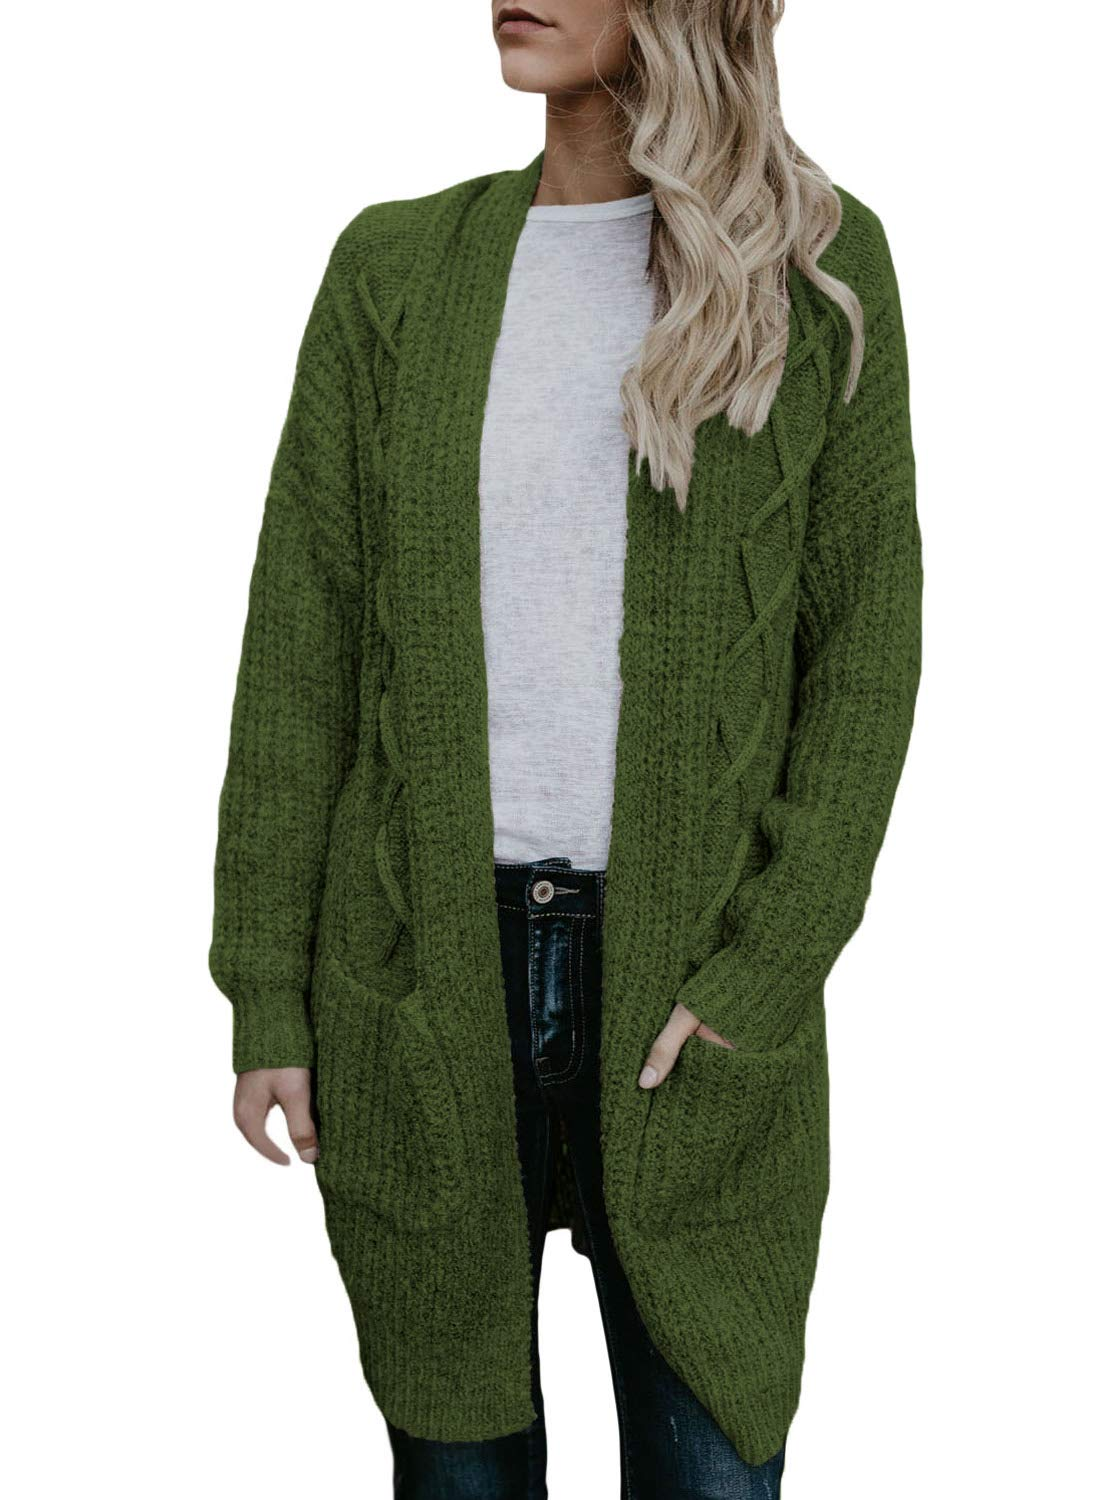 Dokotoo Womens Ladies Oversized Long Sleeve Fall Winter Cozy Warm Chunky Cable Knit Pockets Cardigans Sweater Pullover Green Medium